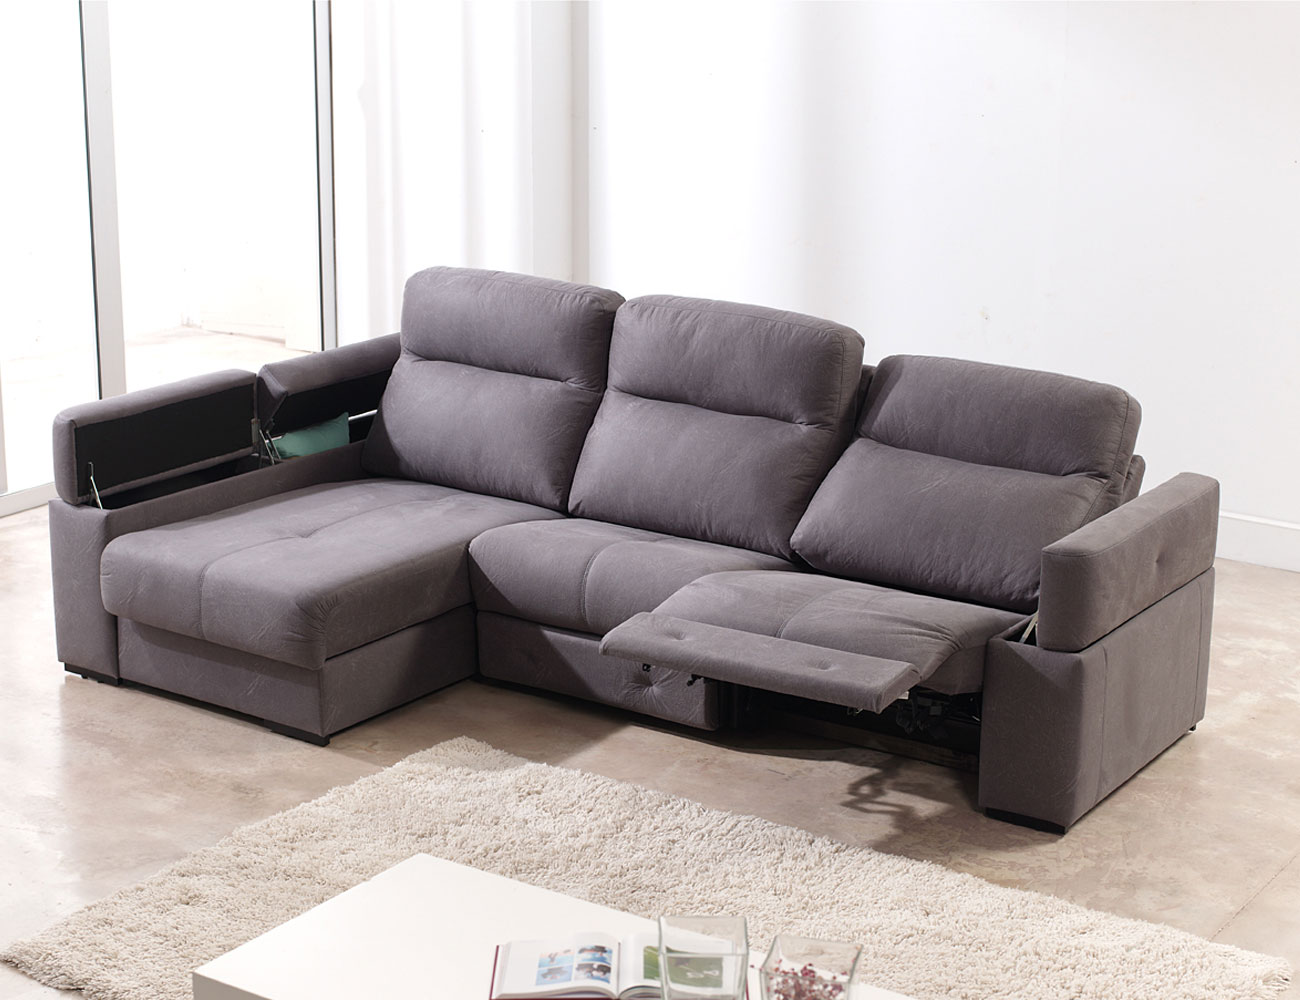 Sofa chaiselongue relax motor electrico 3 arcon 13